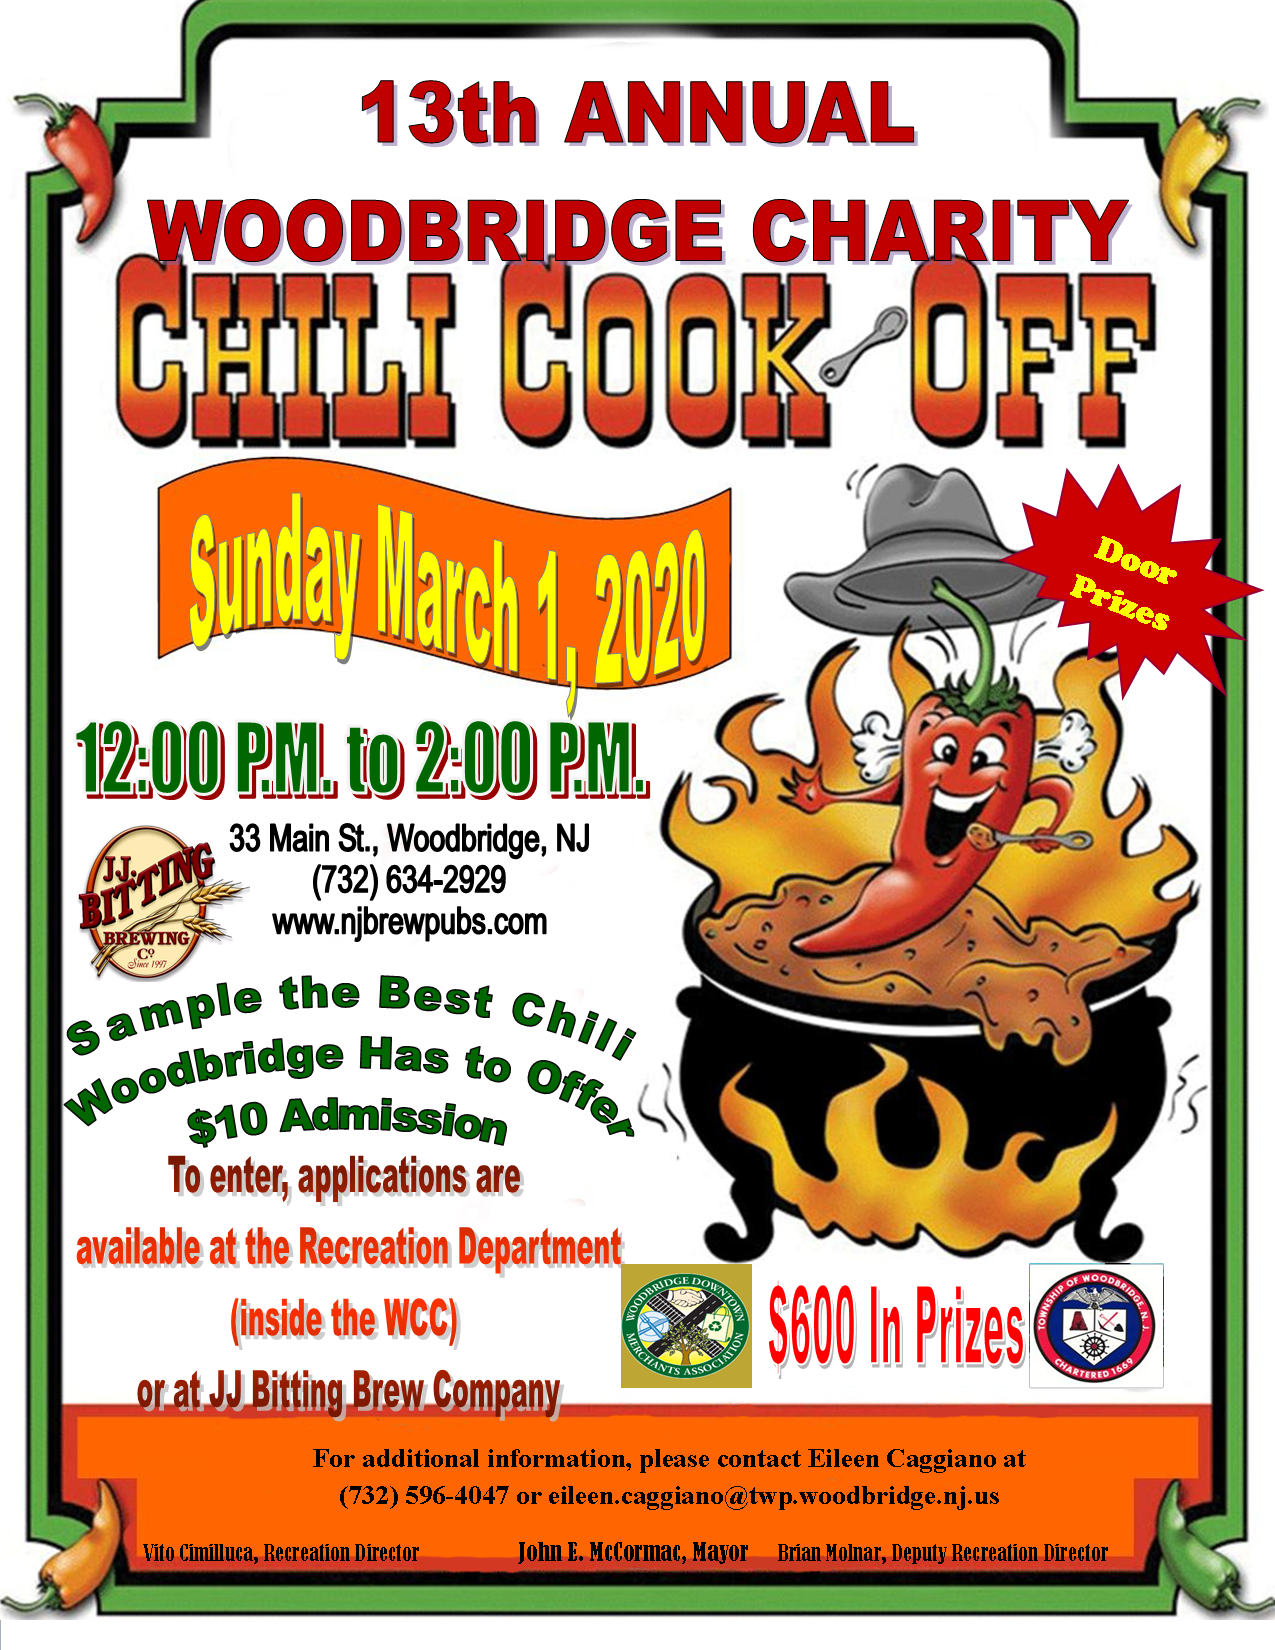 Chili Cook Off Flyer 2020